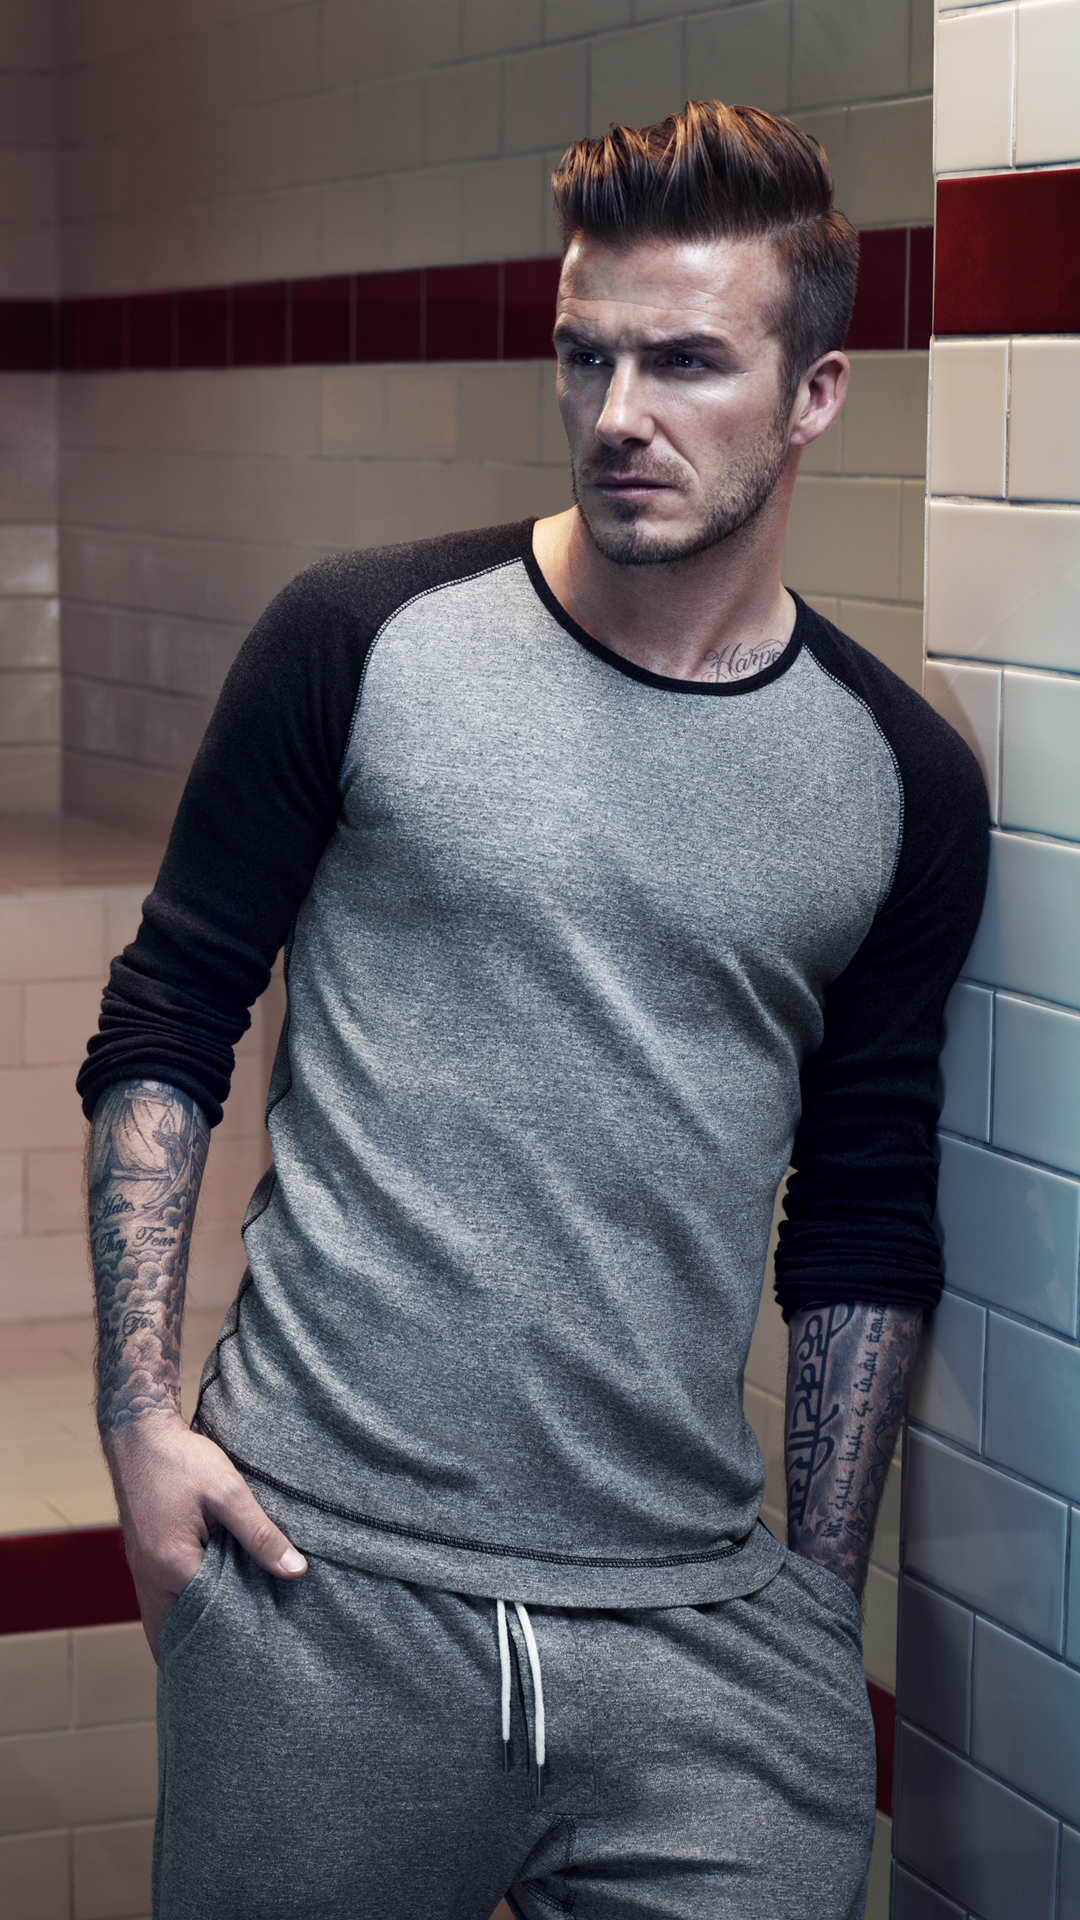 David Beckham HTC hd wallpaper